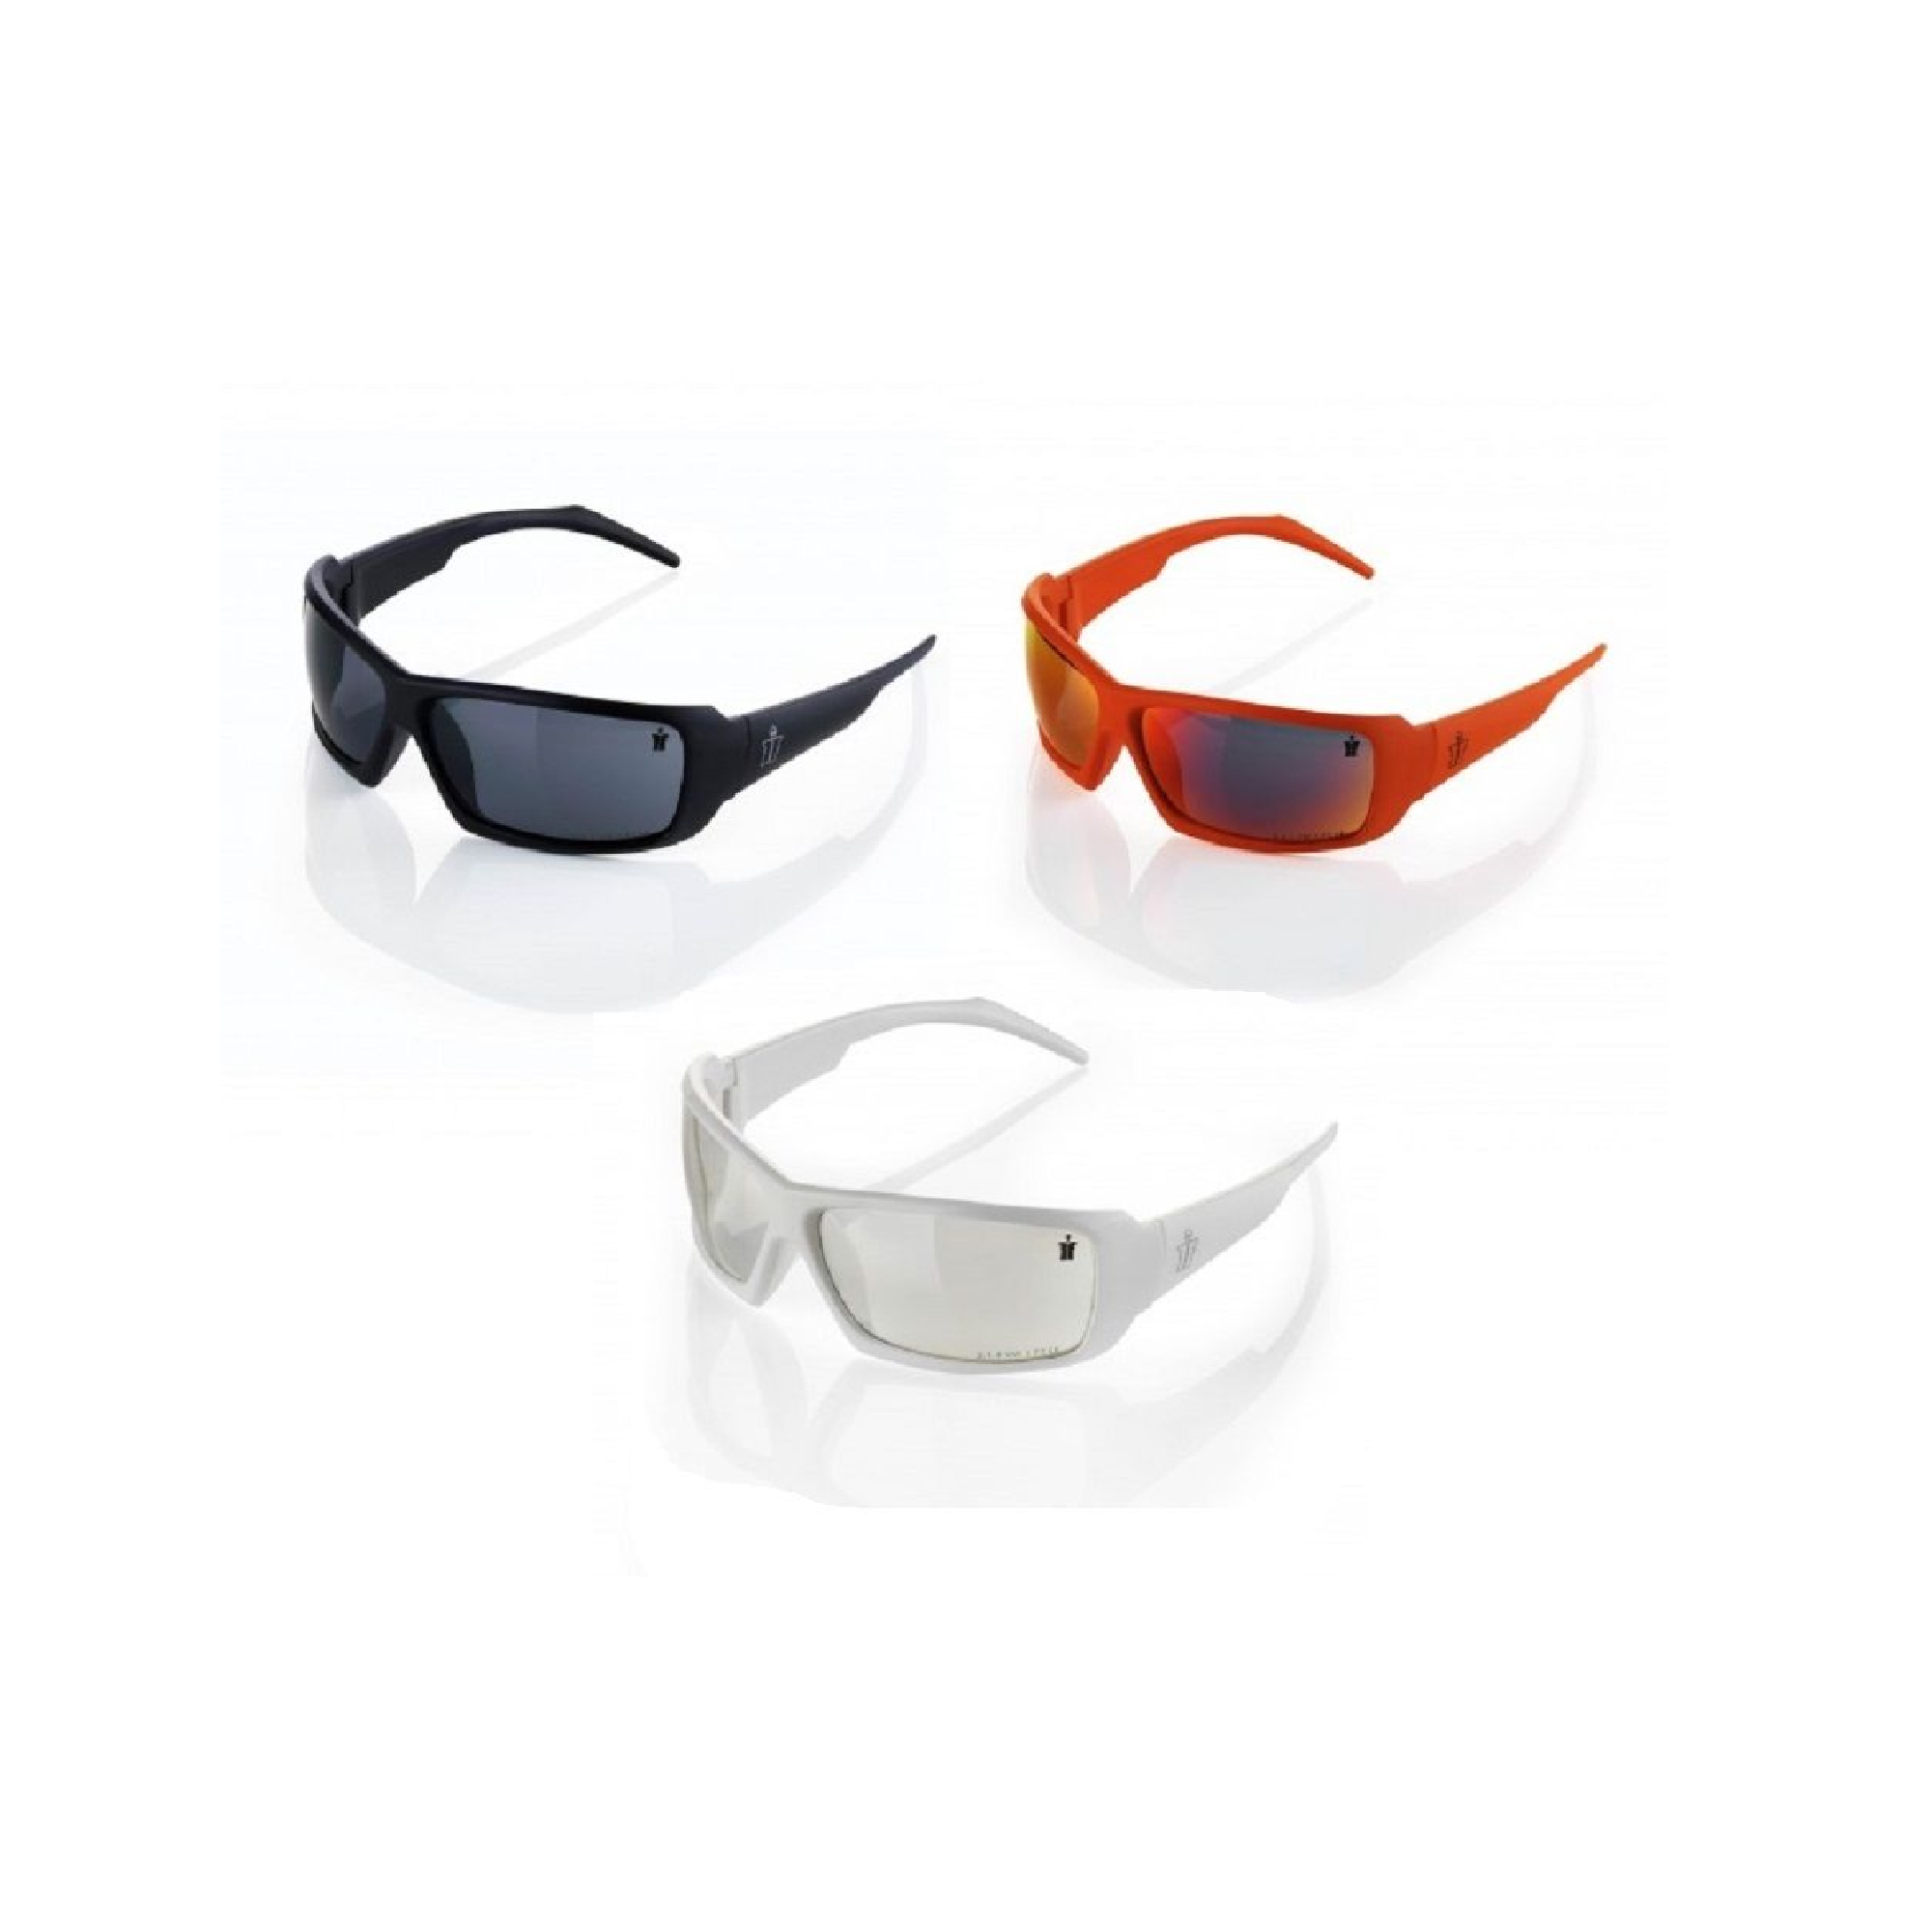 Nylon framed Scruffs Eagle safety specs in black, orange and white on a white background